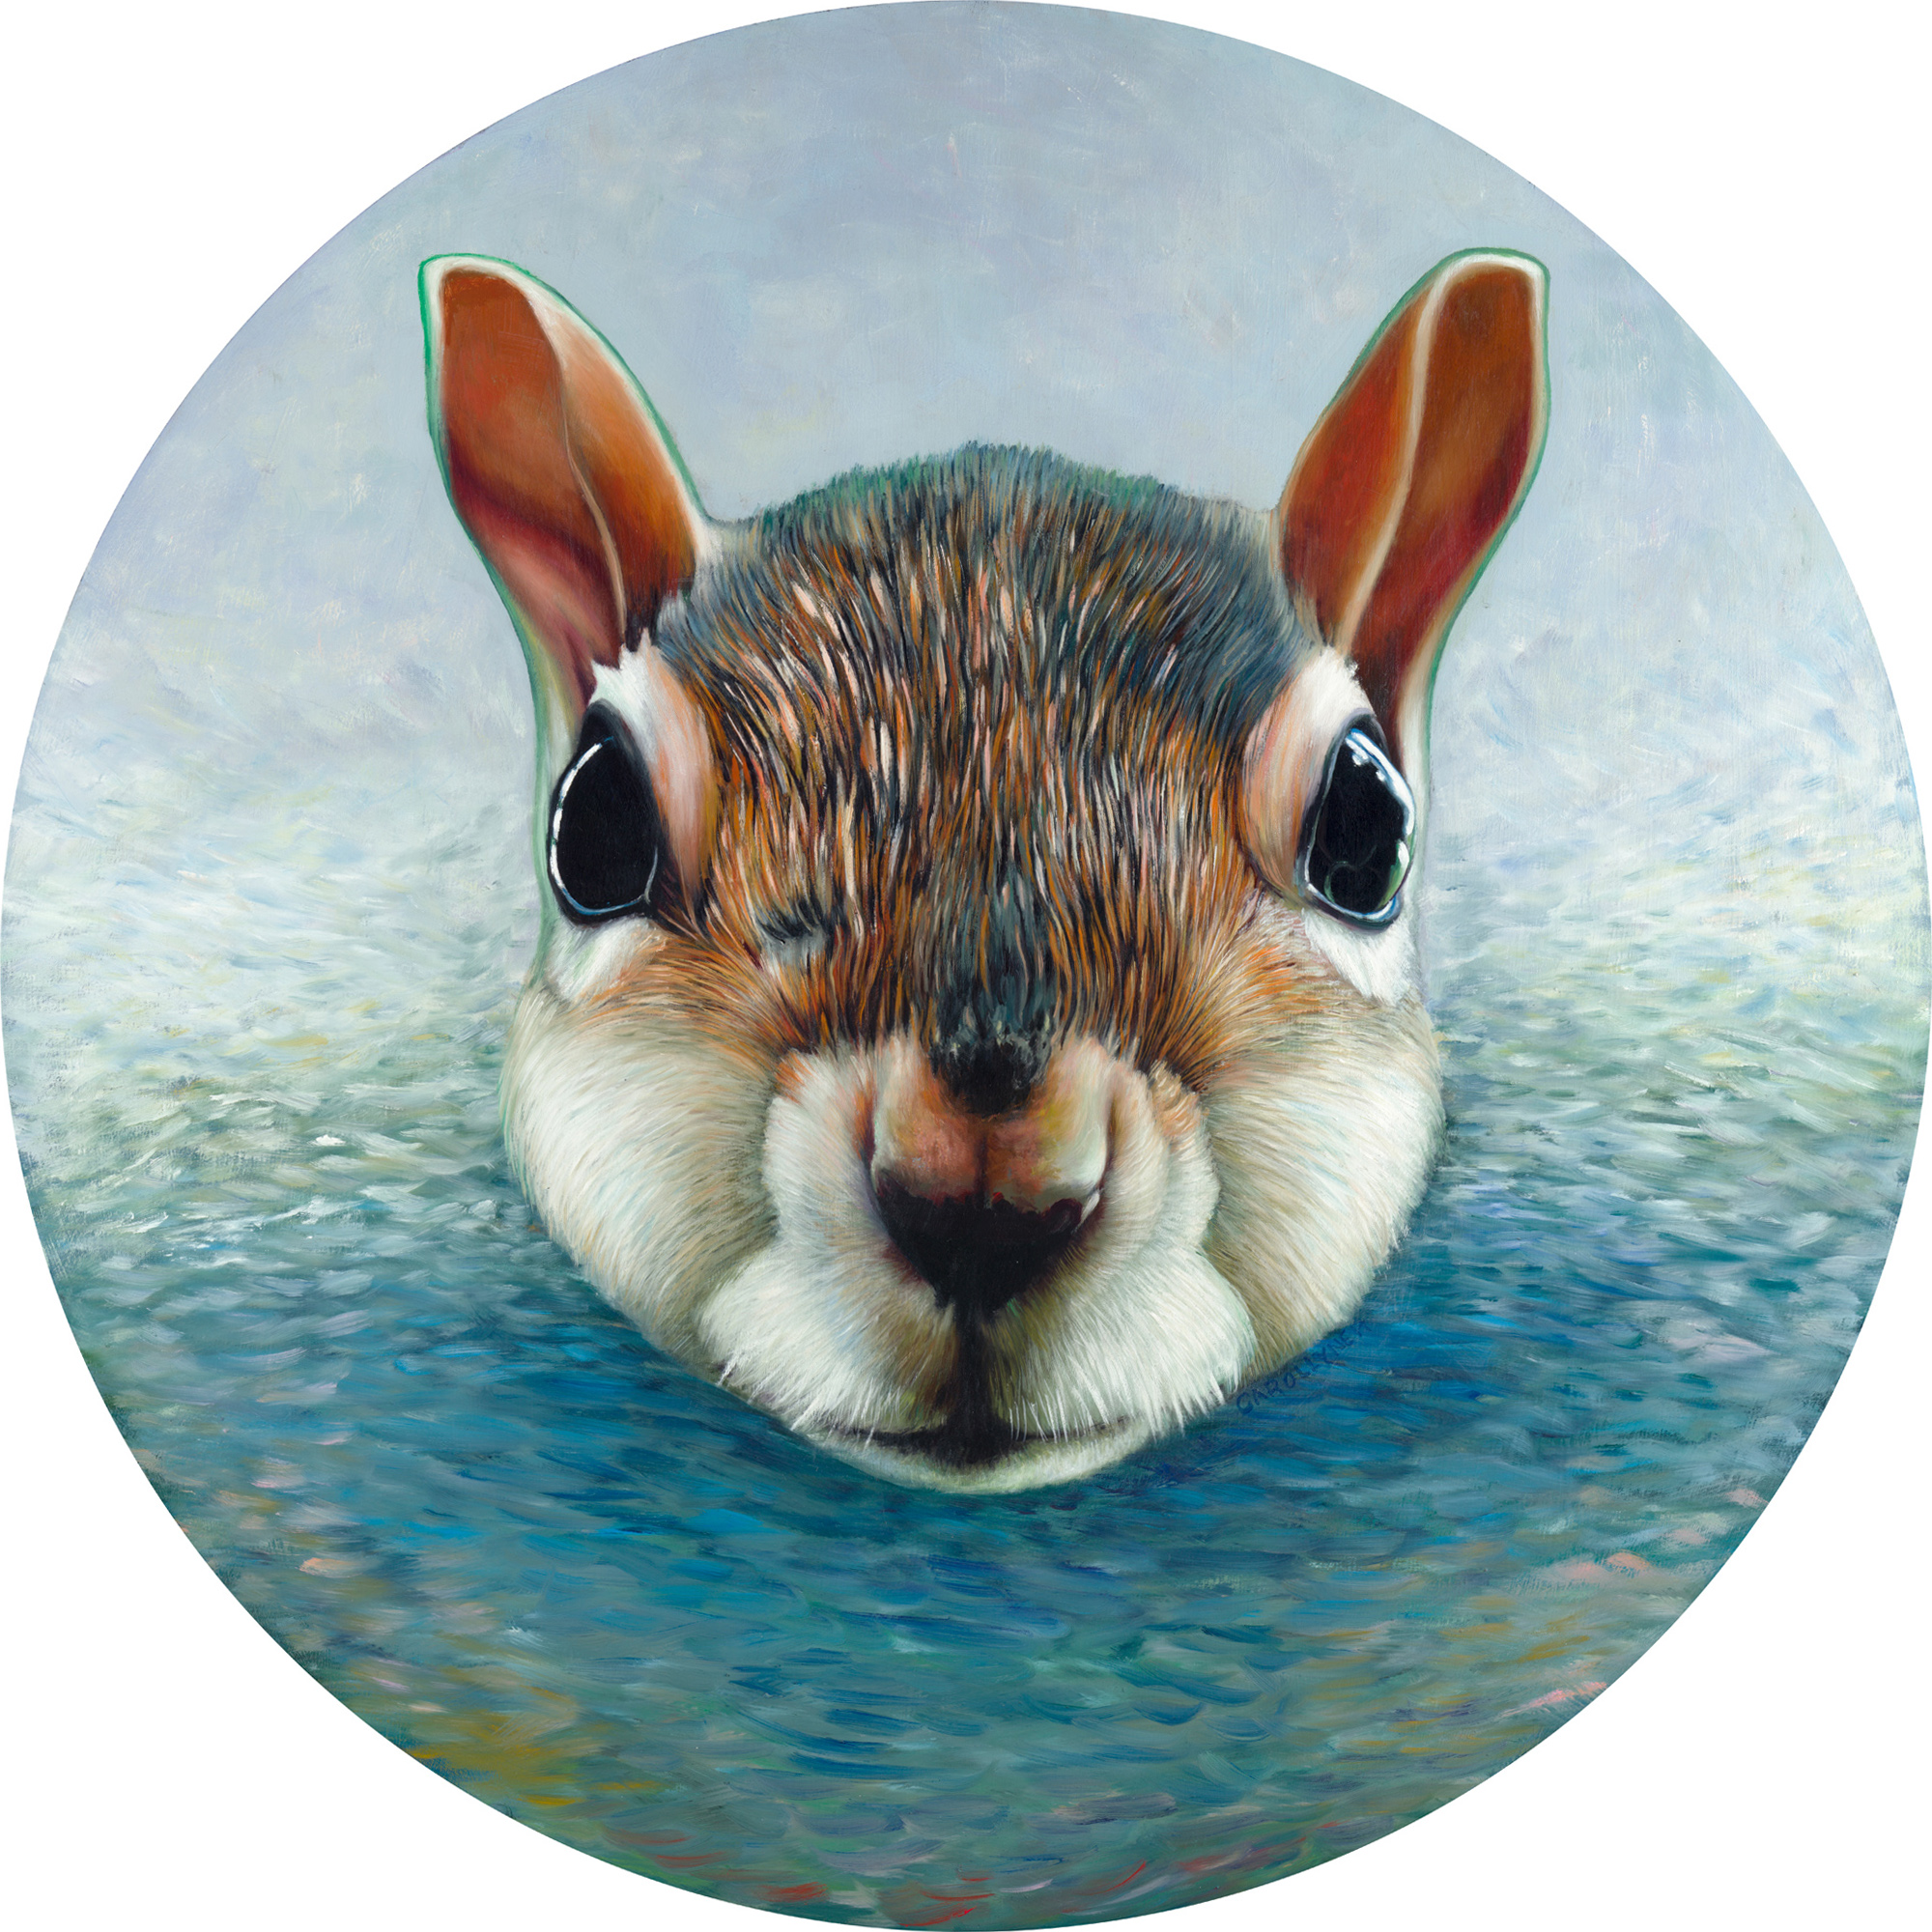 "La Mer Squirrel, oil on panel, 30"" diameter, 2017"